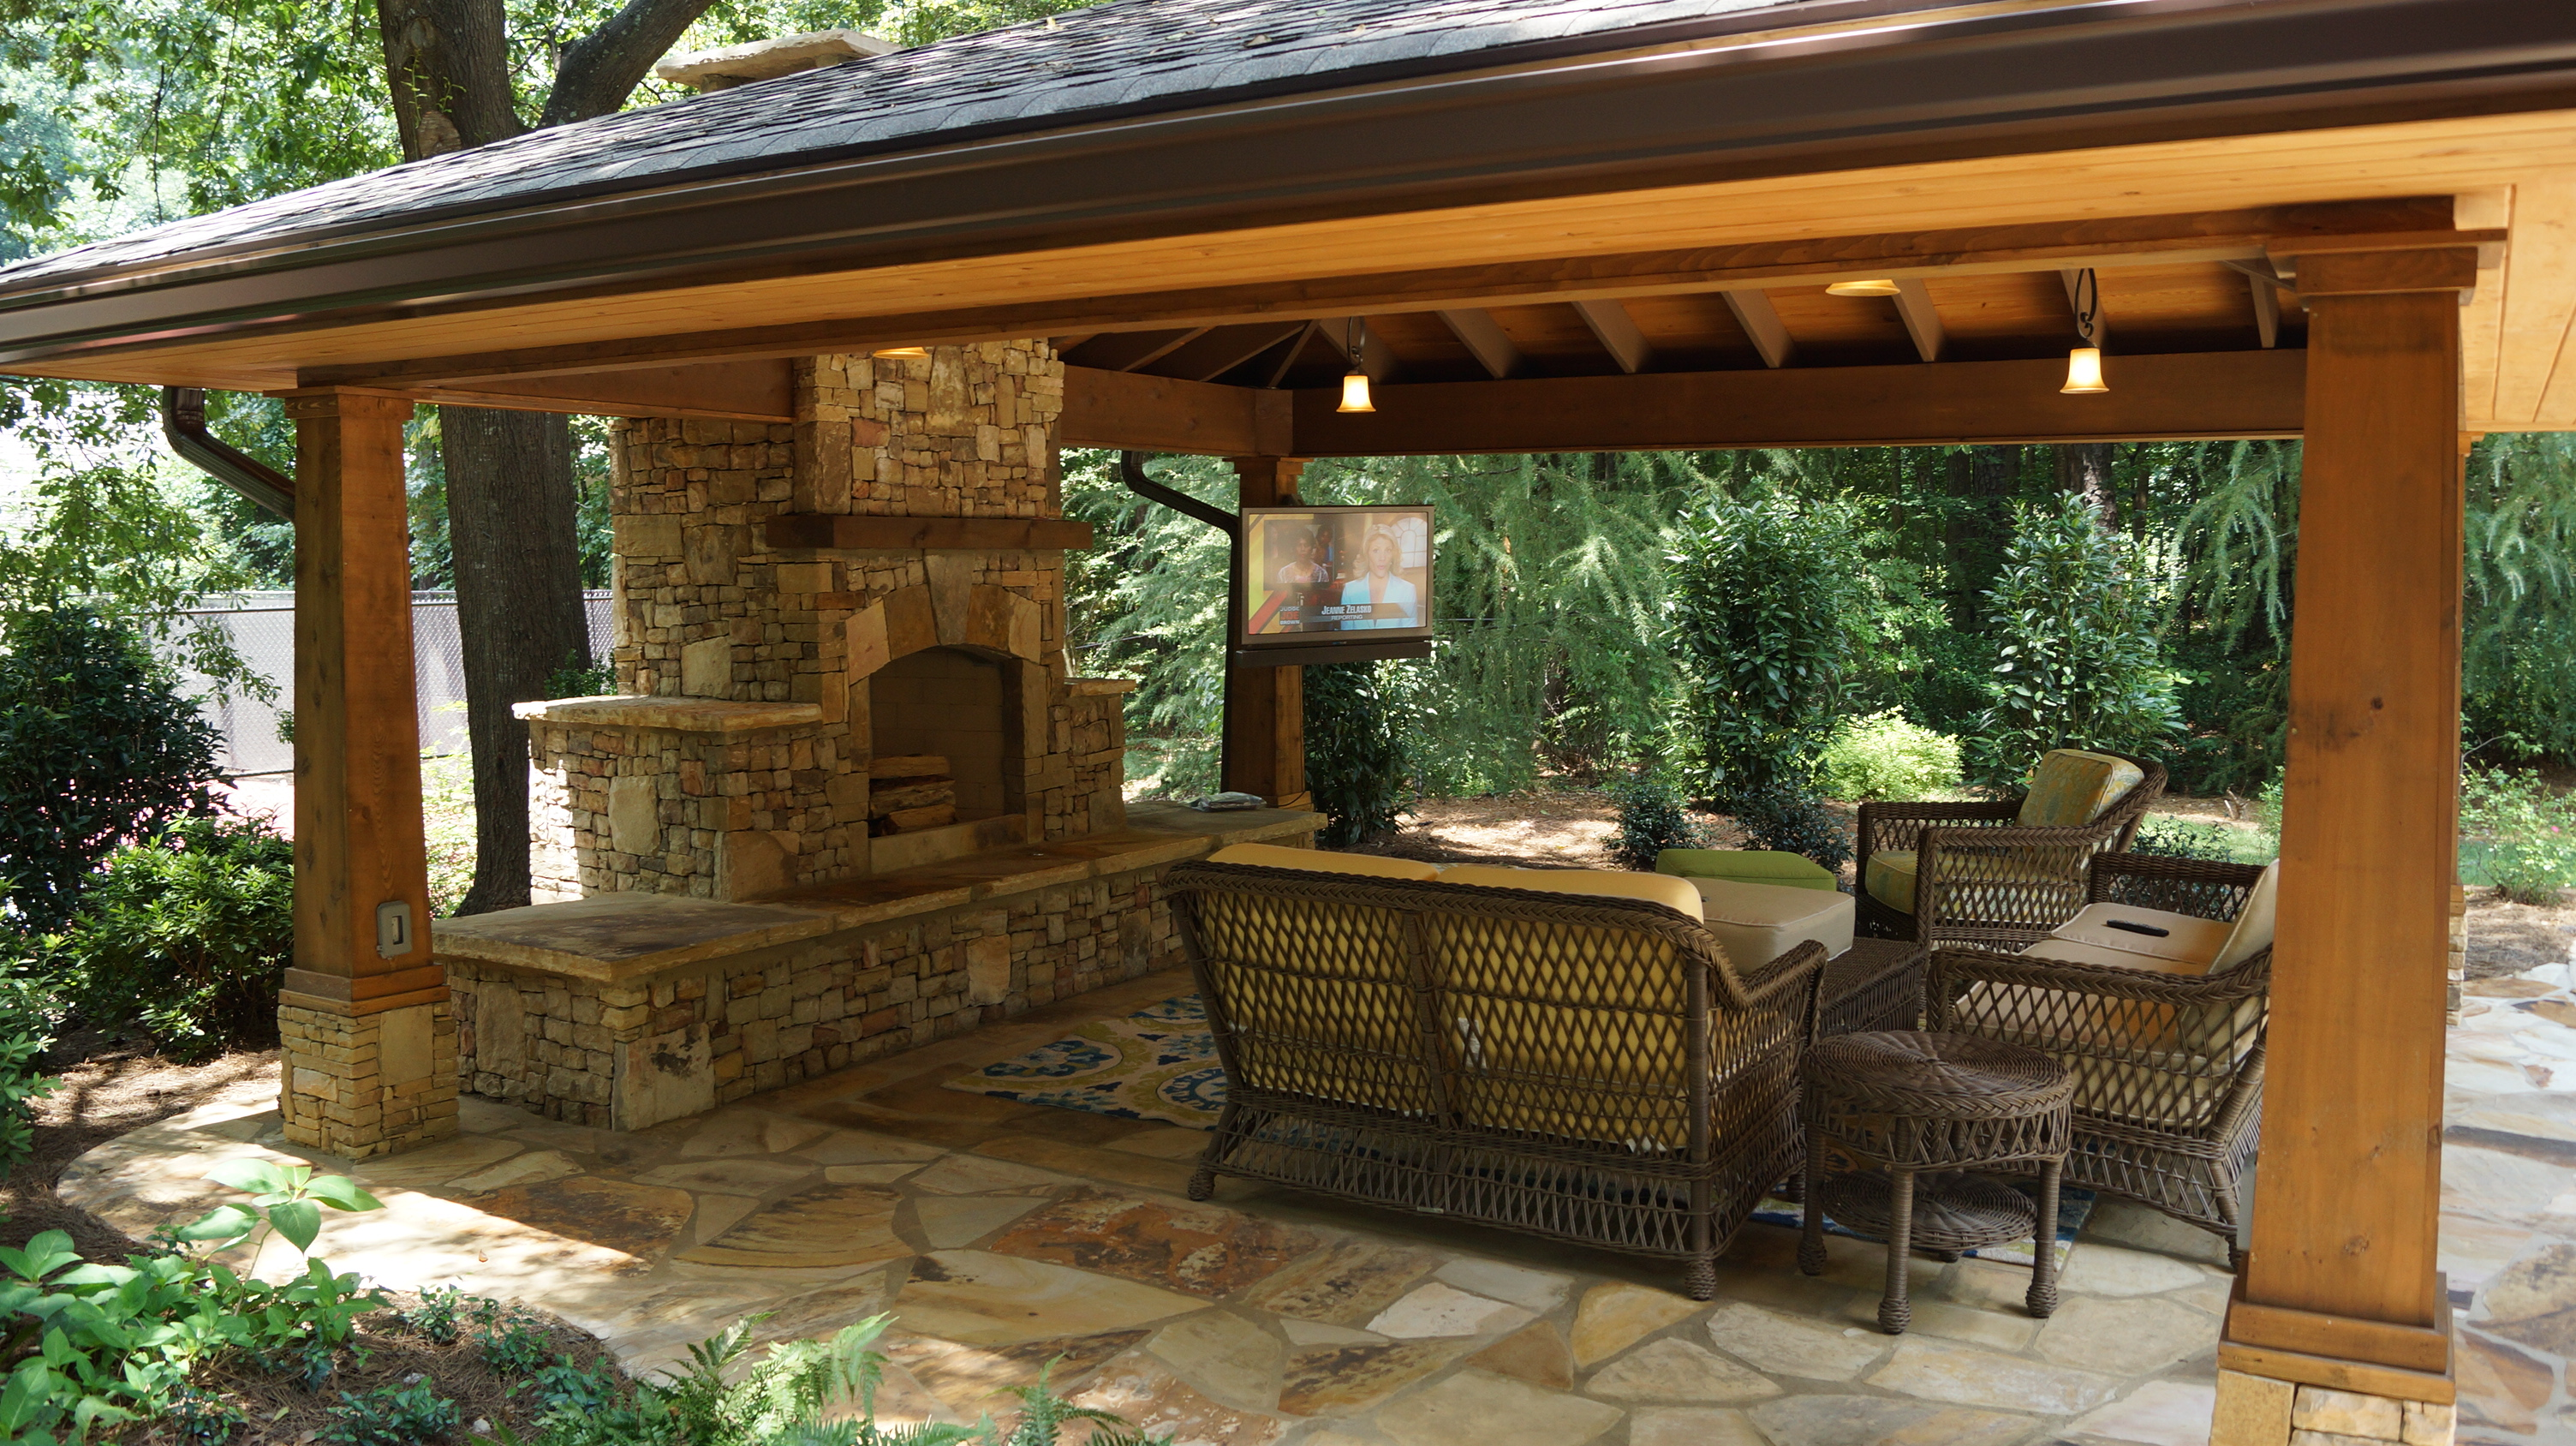 Outdoor Living - Lundberg Specialty Services on Backyard Outdoor Living Spaces id=28283